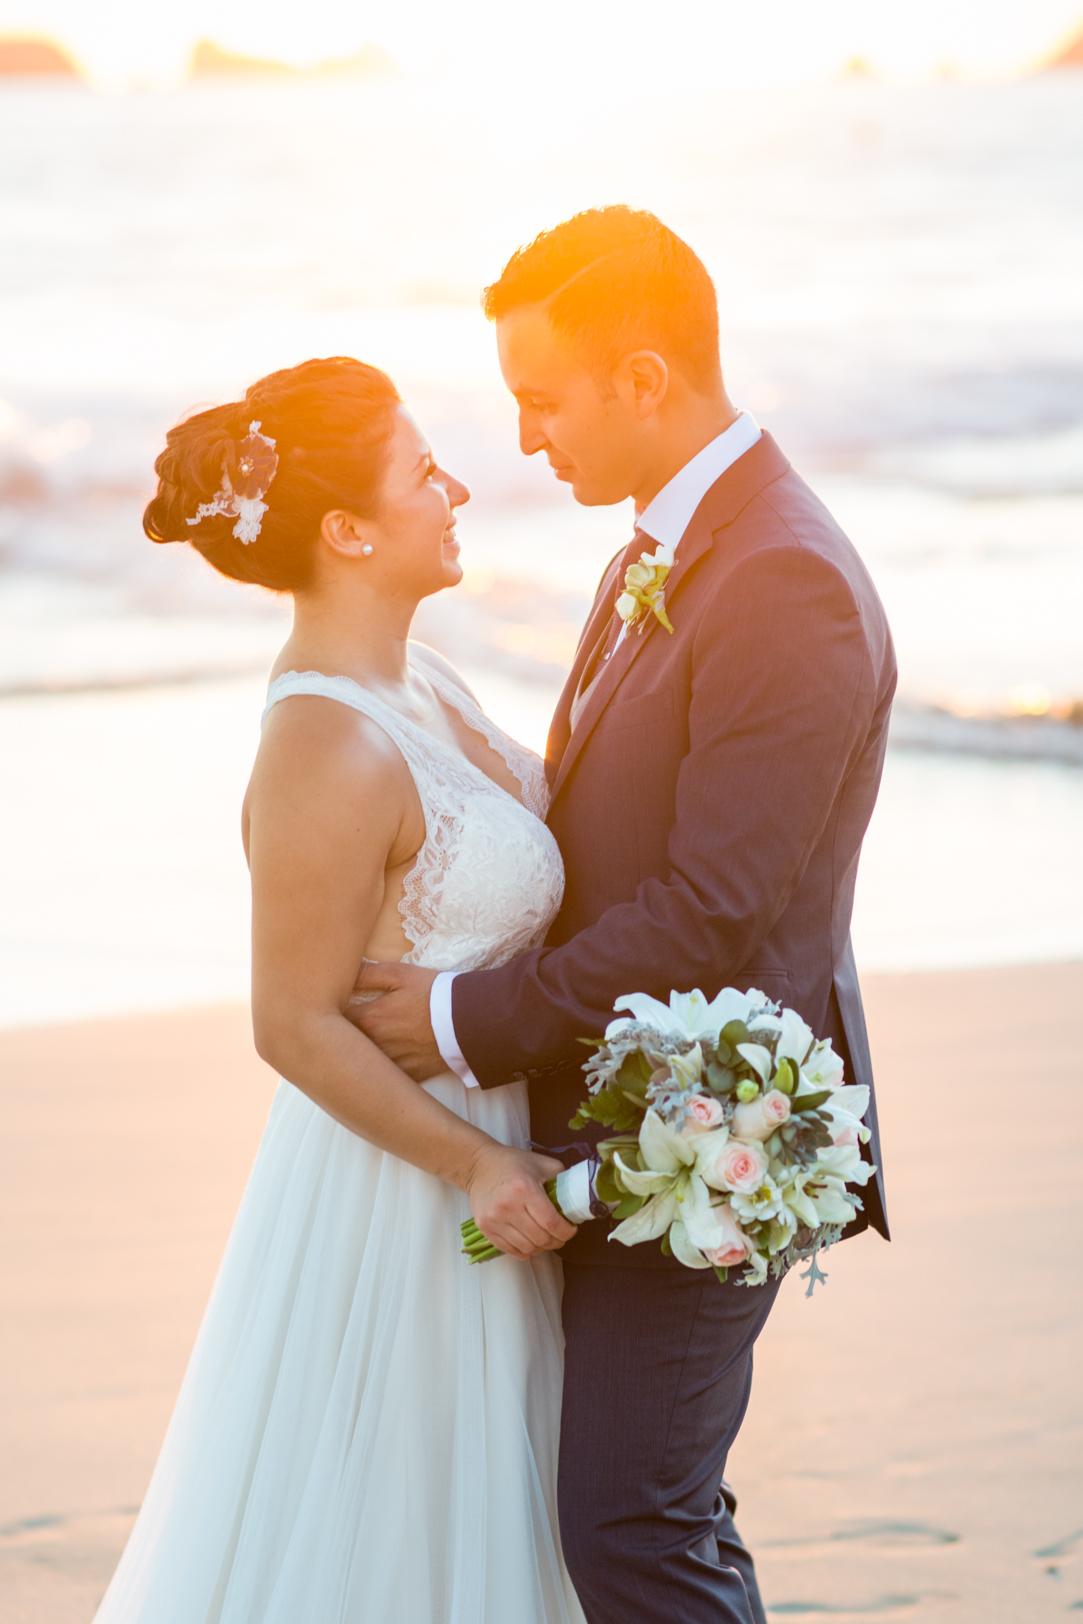 Bride and groom beach portrait at Sunscape Dorado Pacifico Ixtapa destination wedding